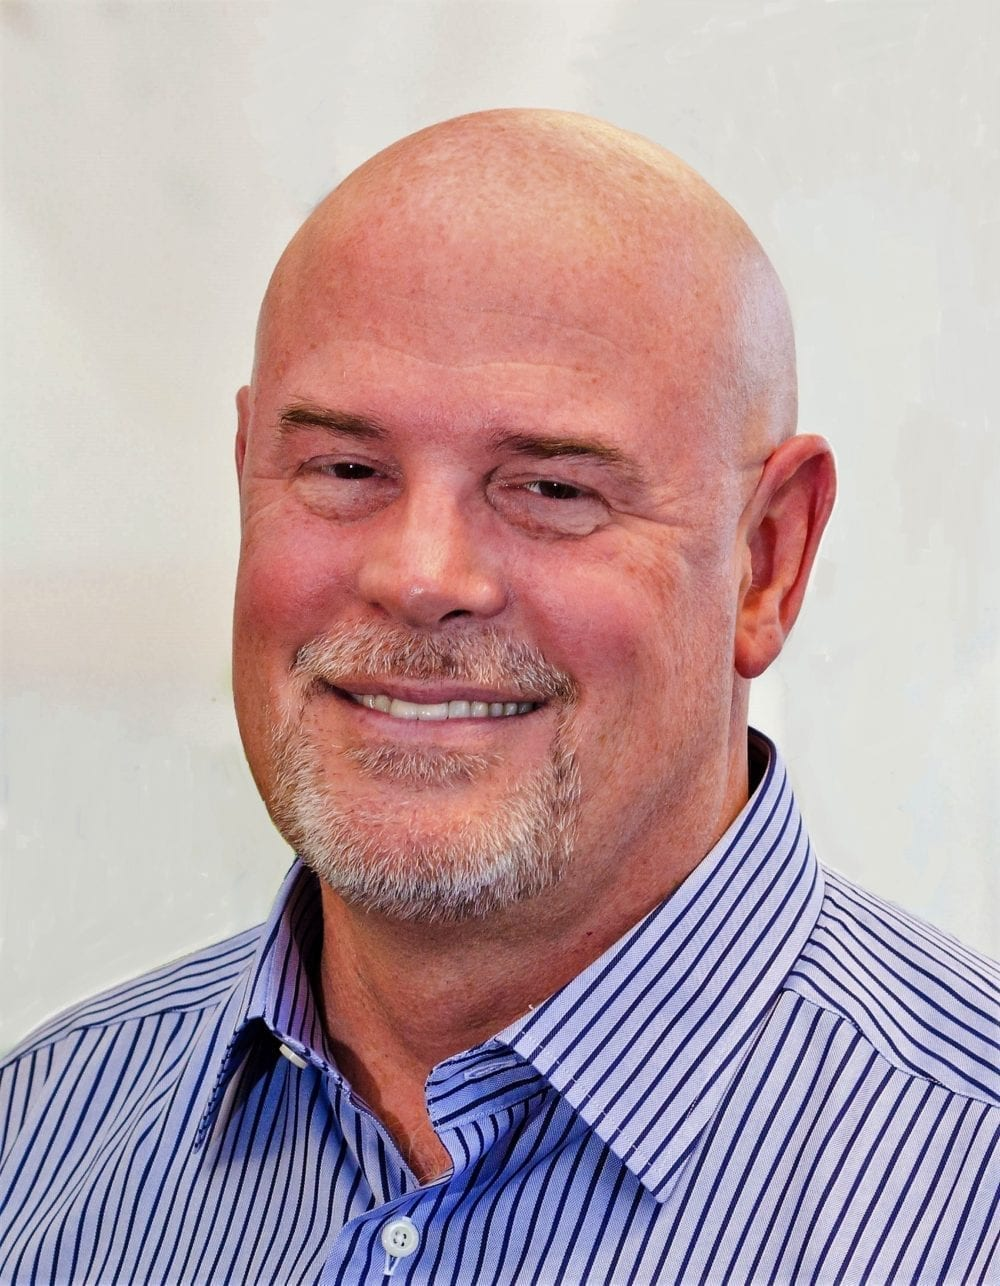 chris elam turnkey vacation rentals vp of guest experience